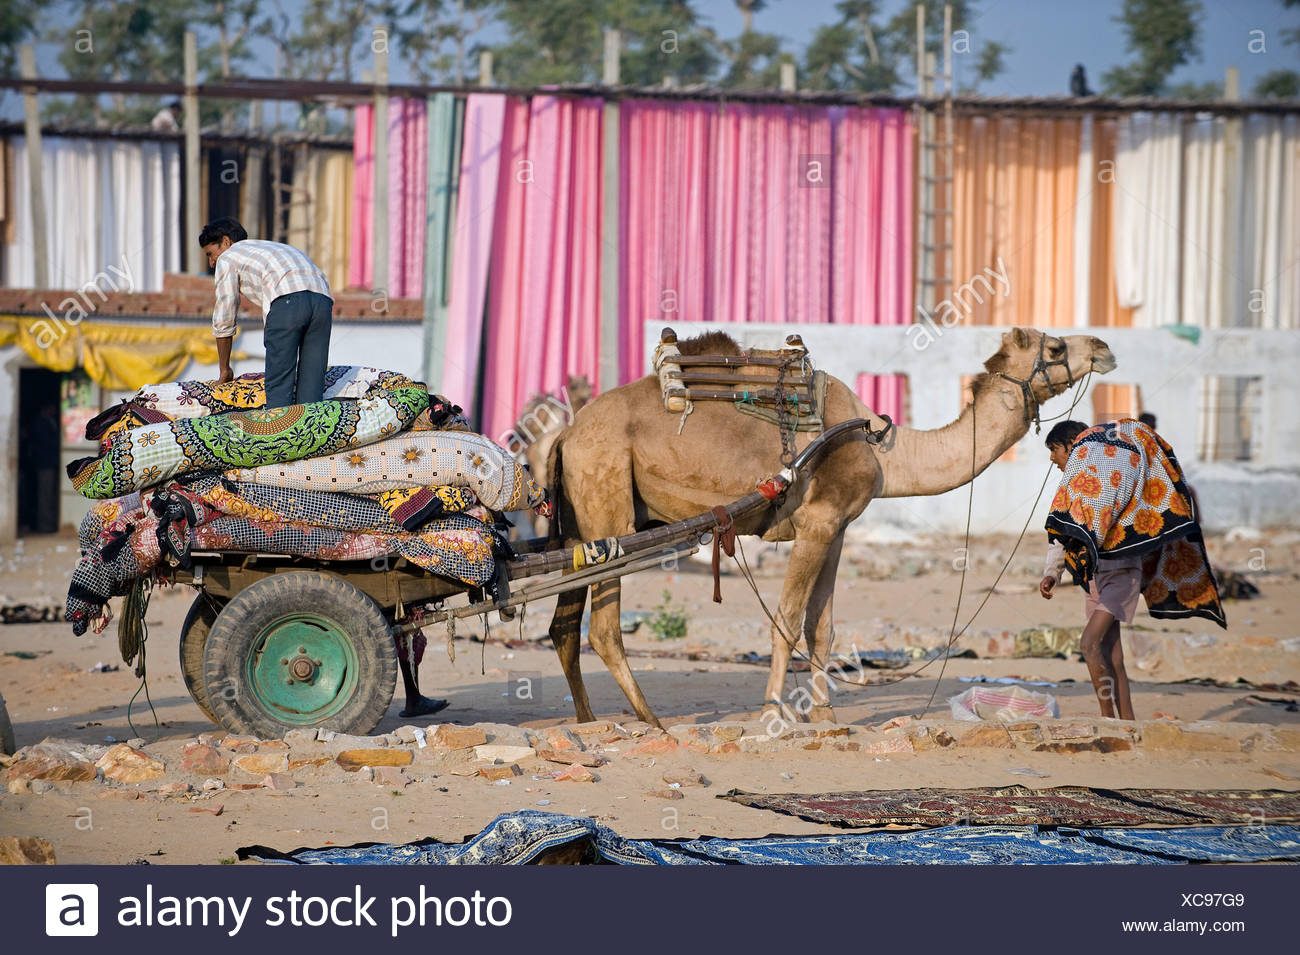 Camel pulling a two wheeled cart in front of dyed fabric, Sanganer dyeing centre near Jaipur, Rajasthan, India, Asia - Stock Image